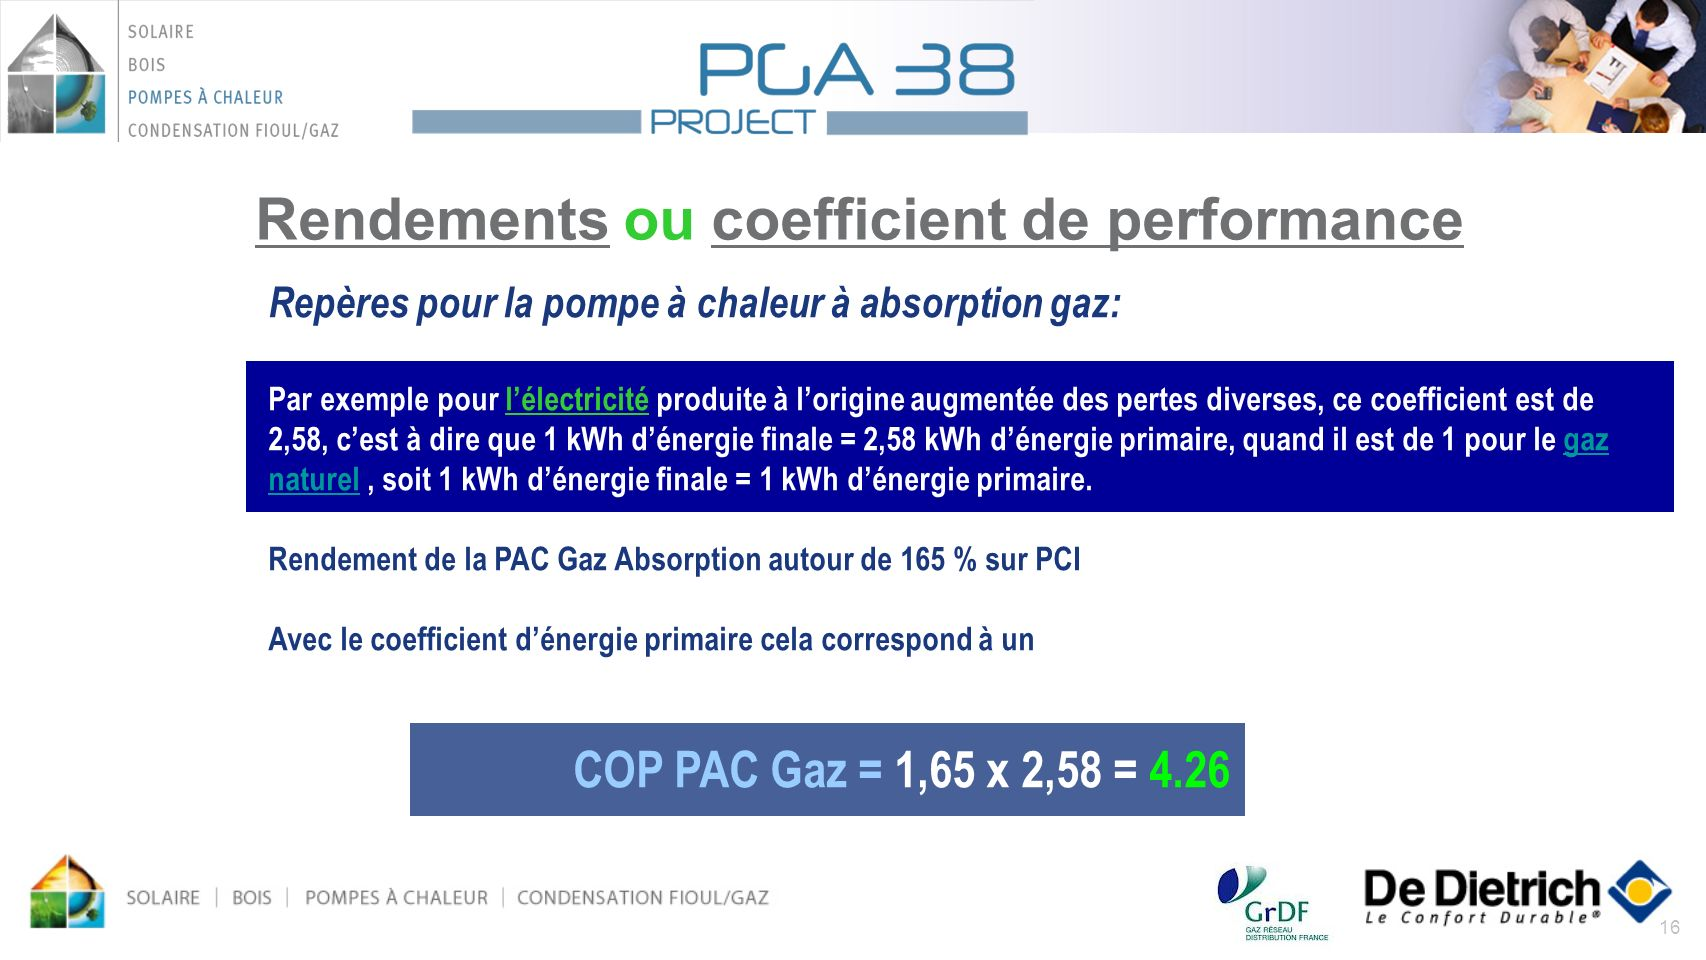 Rendements ou coefficient de performance